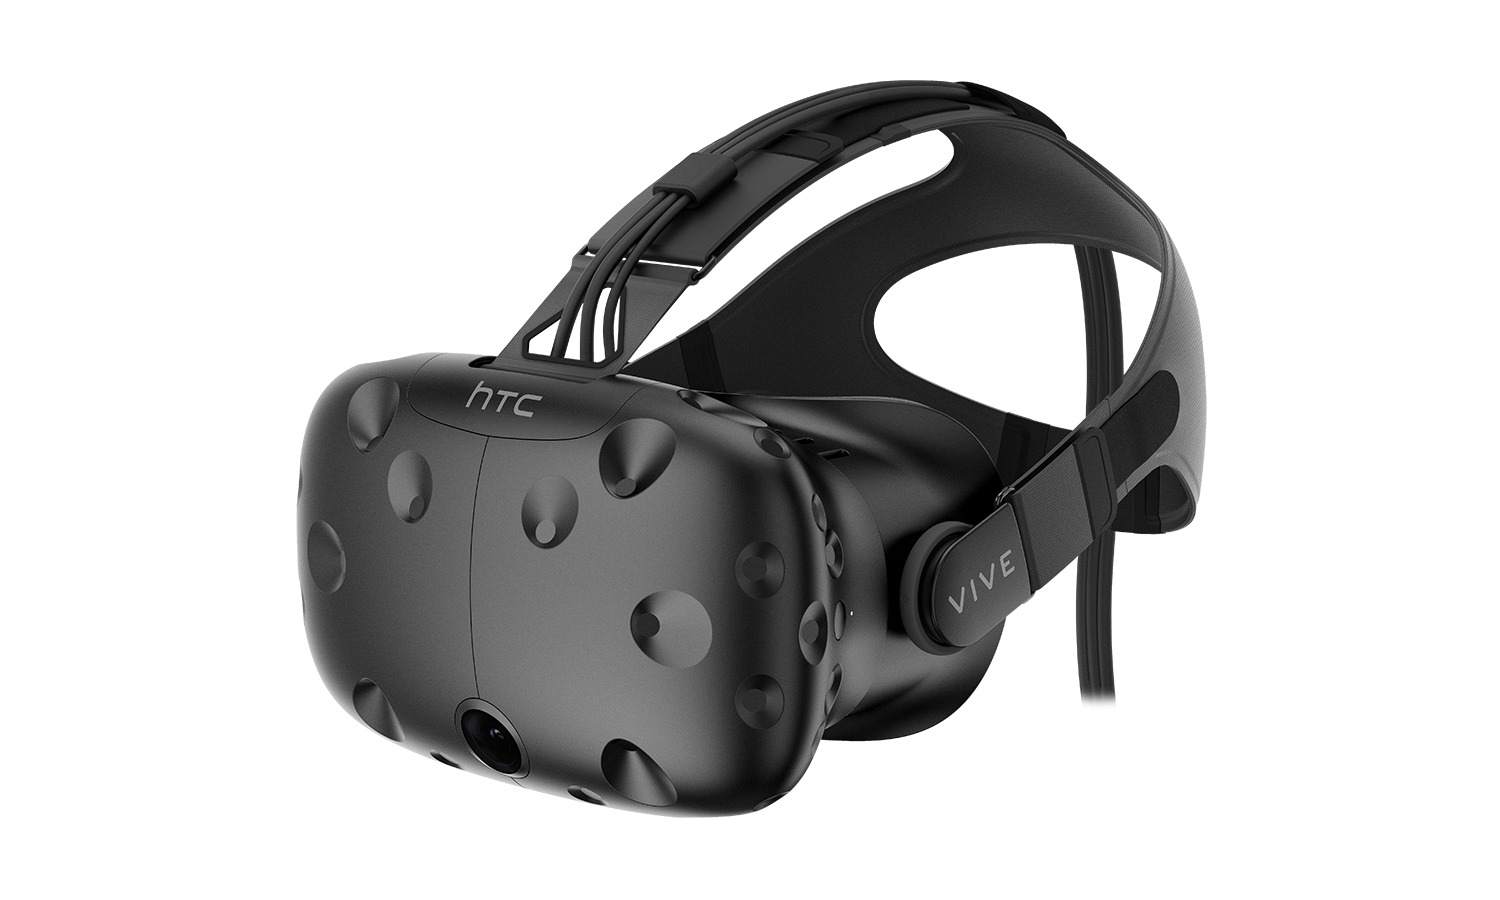 HTC Vive Headsets Now Ships within 72 hours of Ordering.